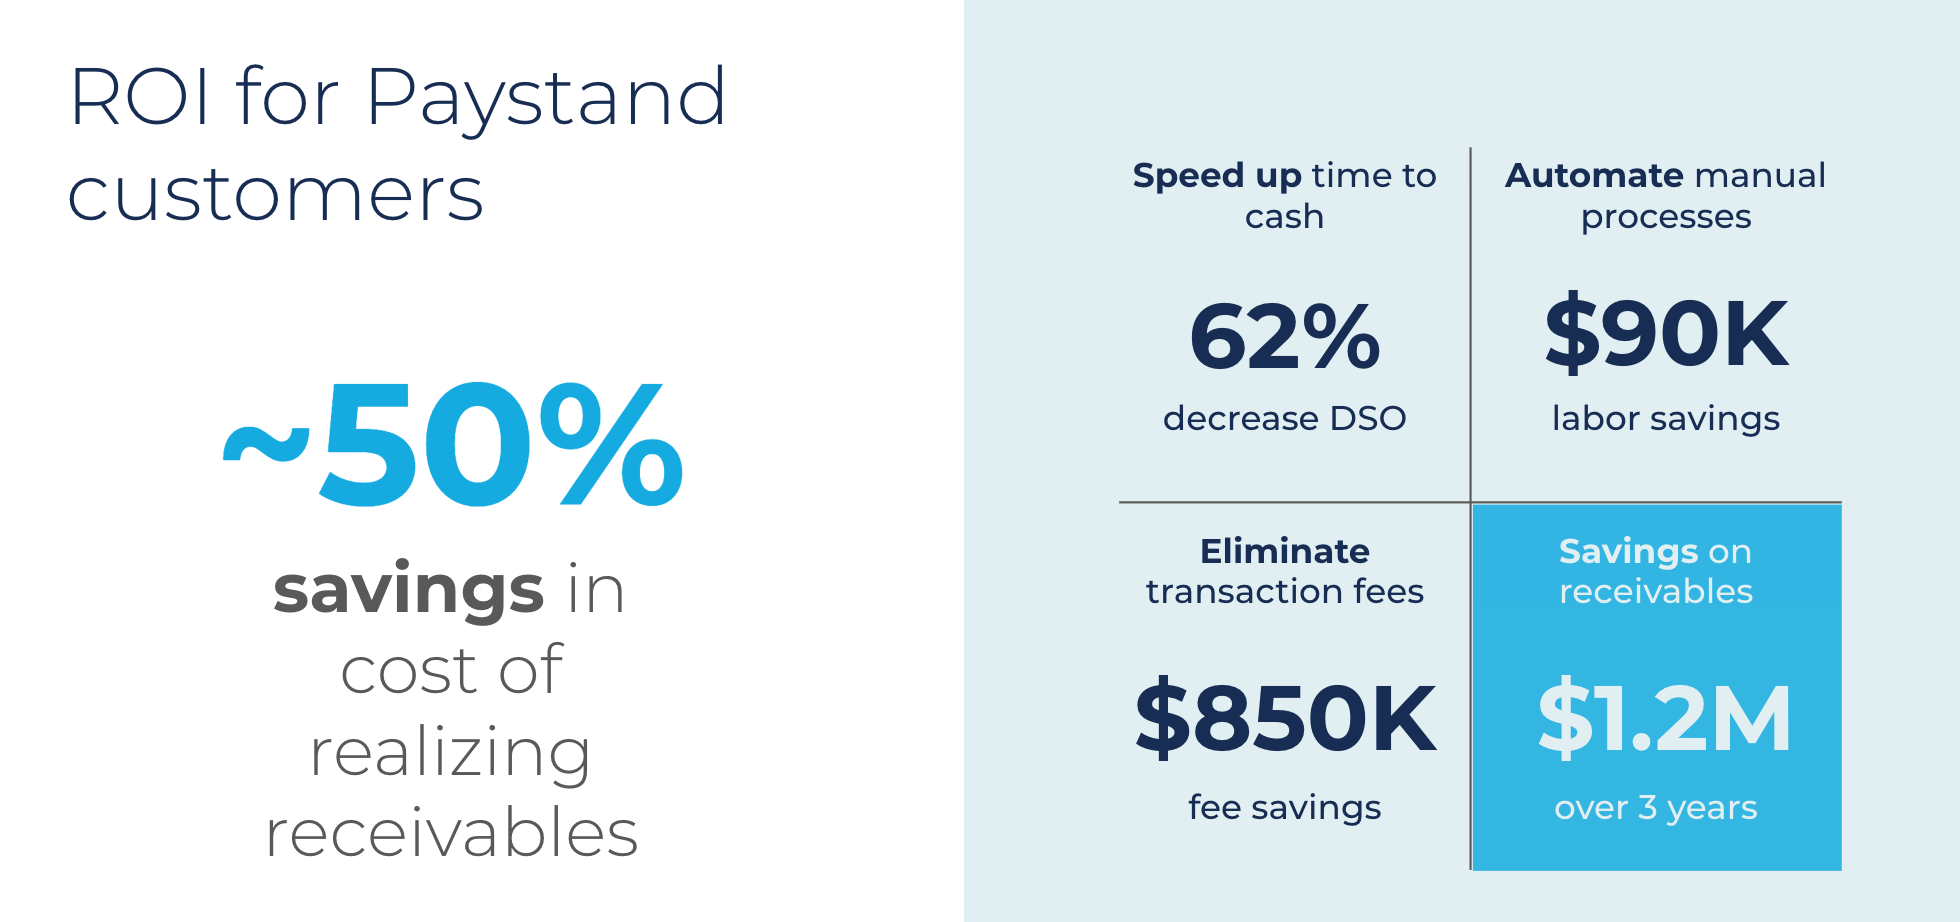 ROI for Paystand customers